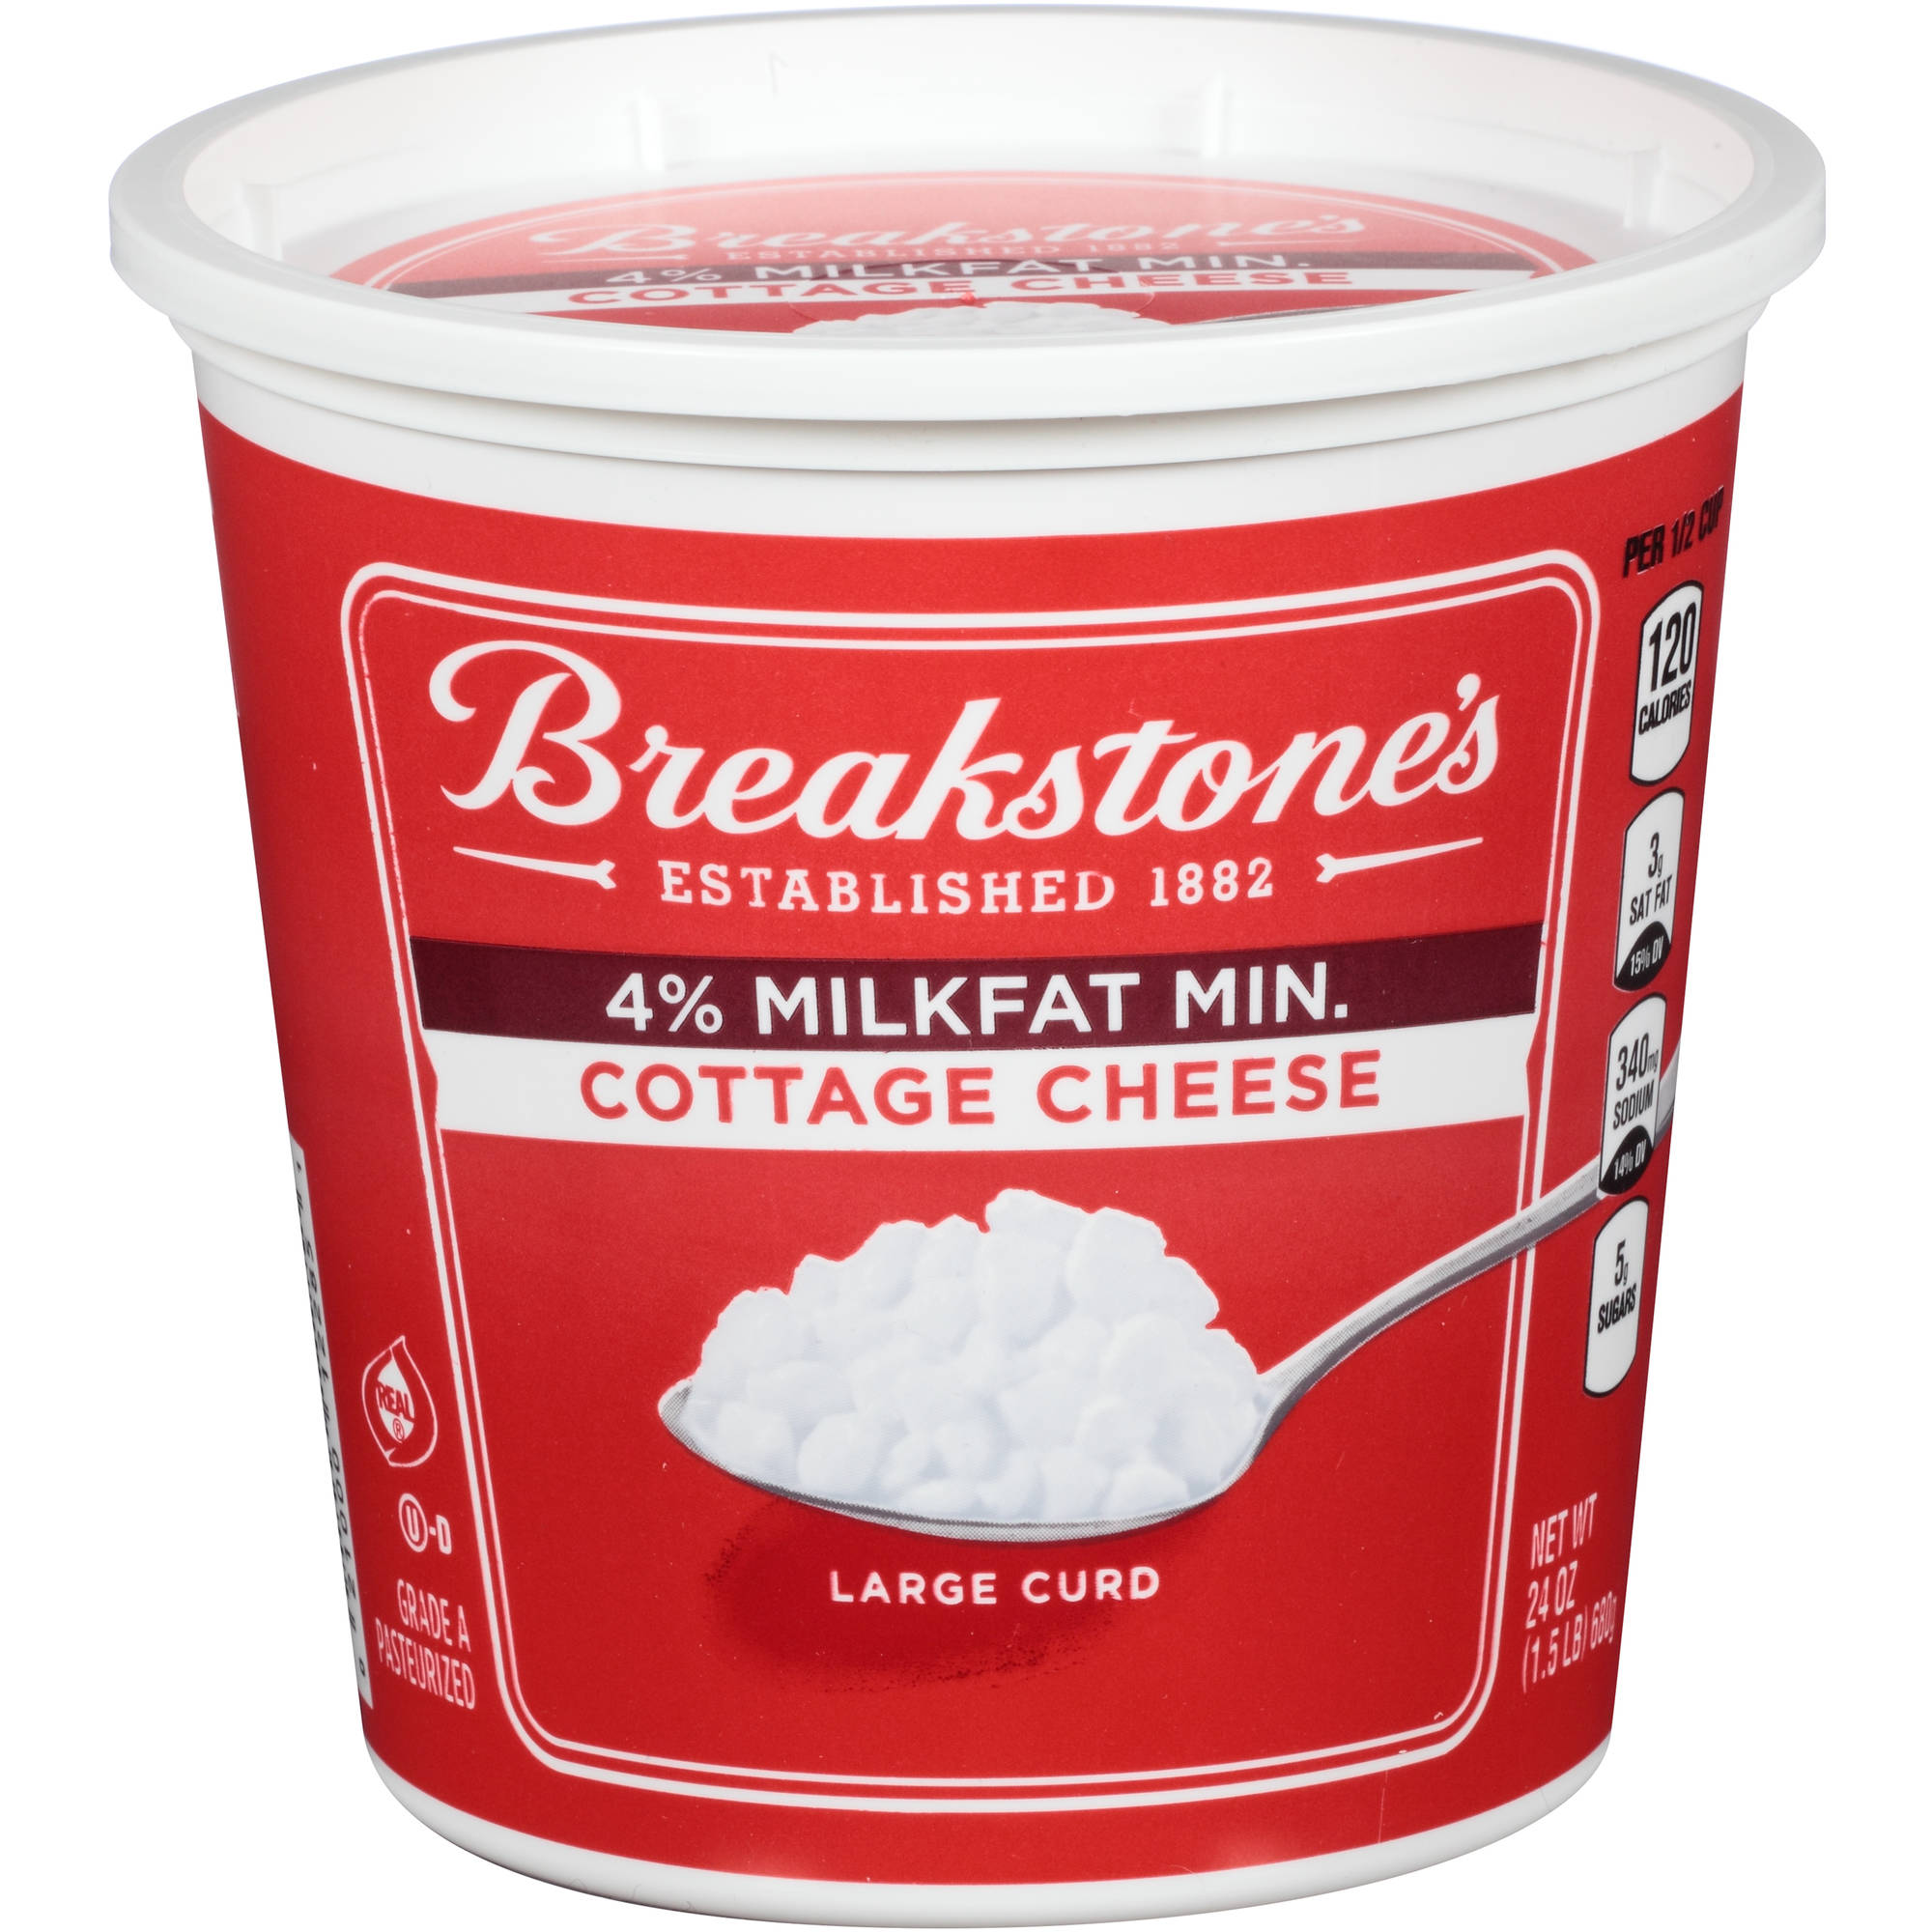 Breakstone's Large Curd Cottage Cheese, 24 oz